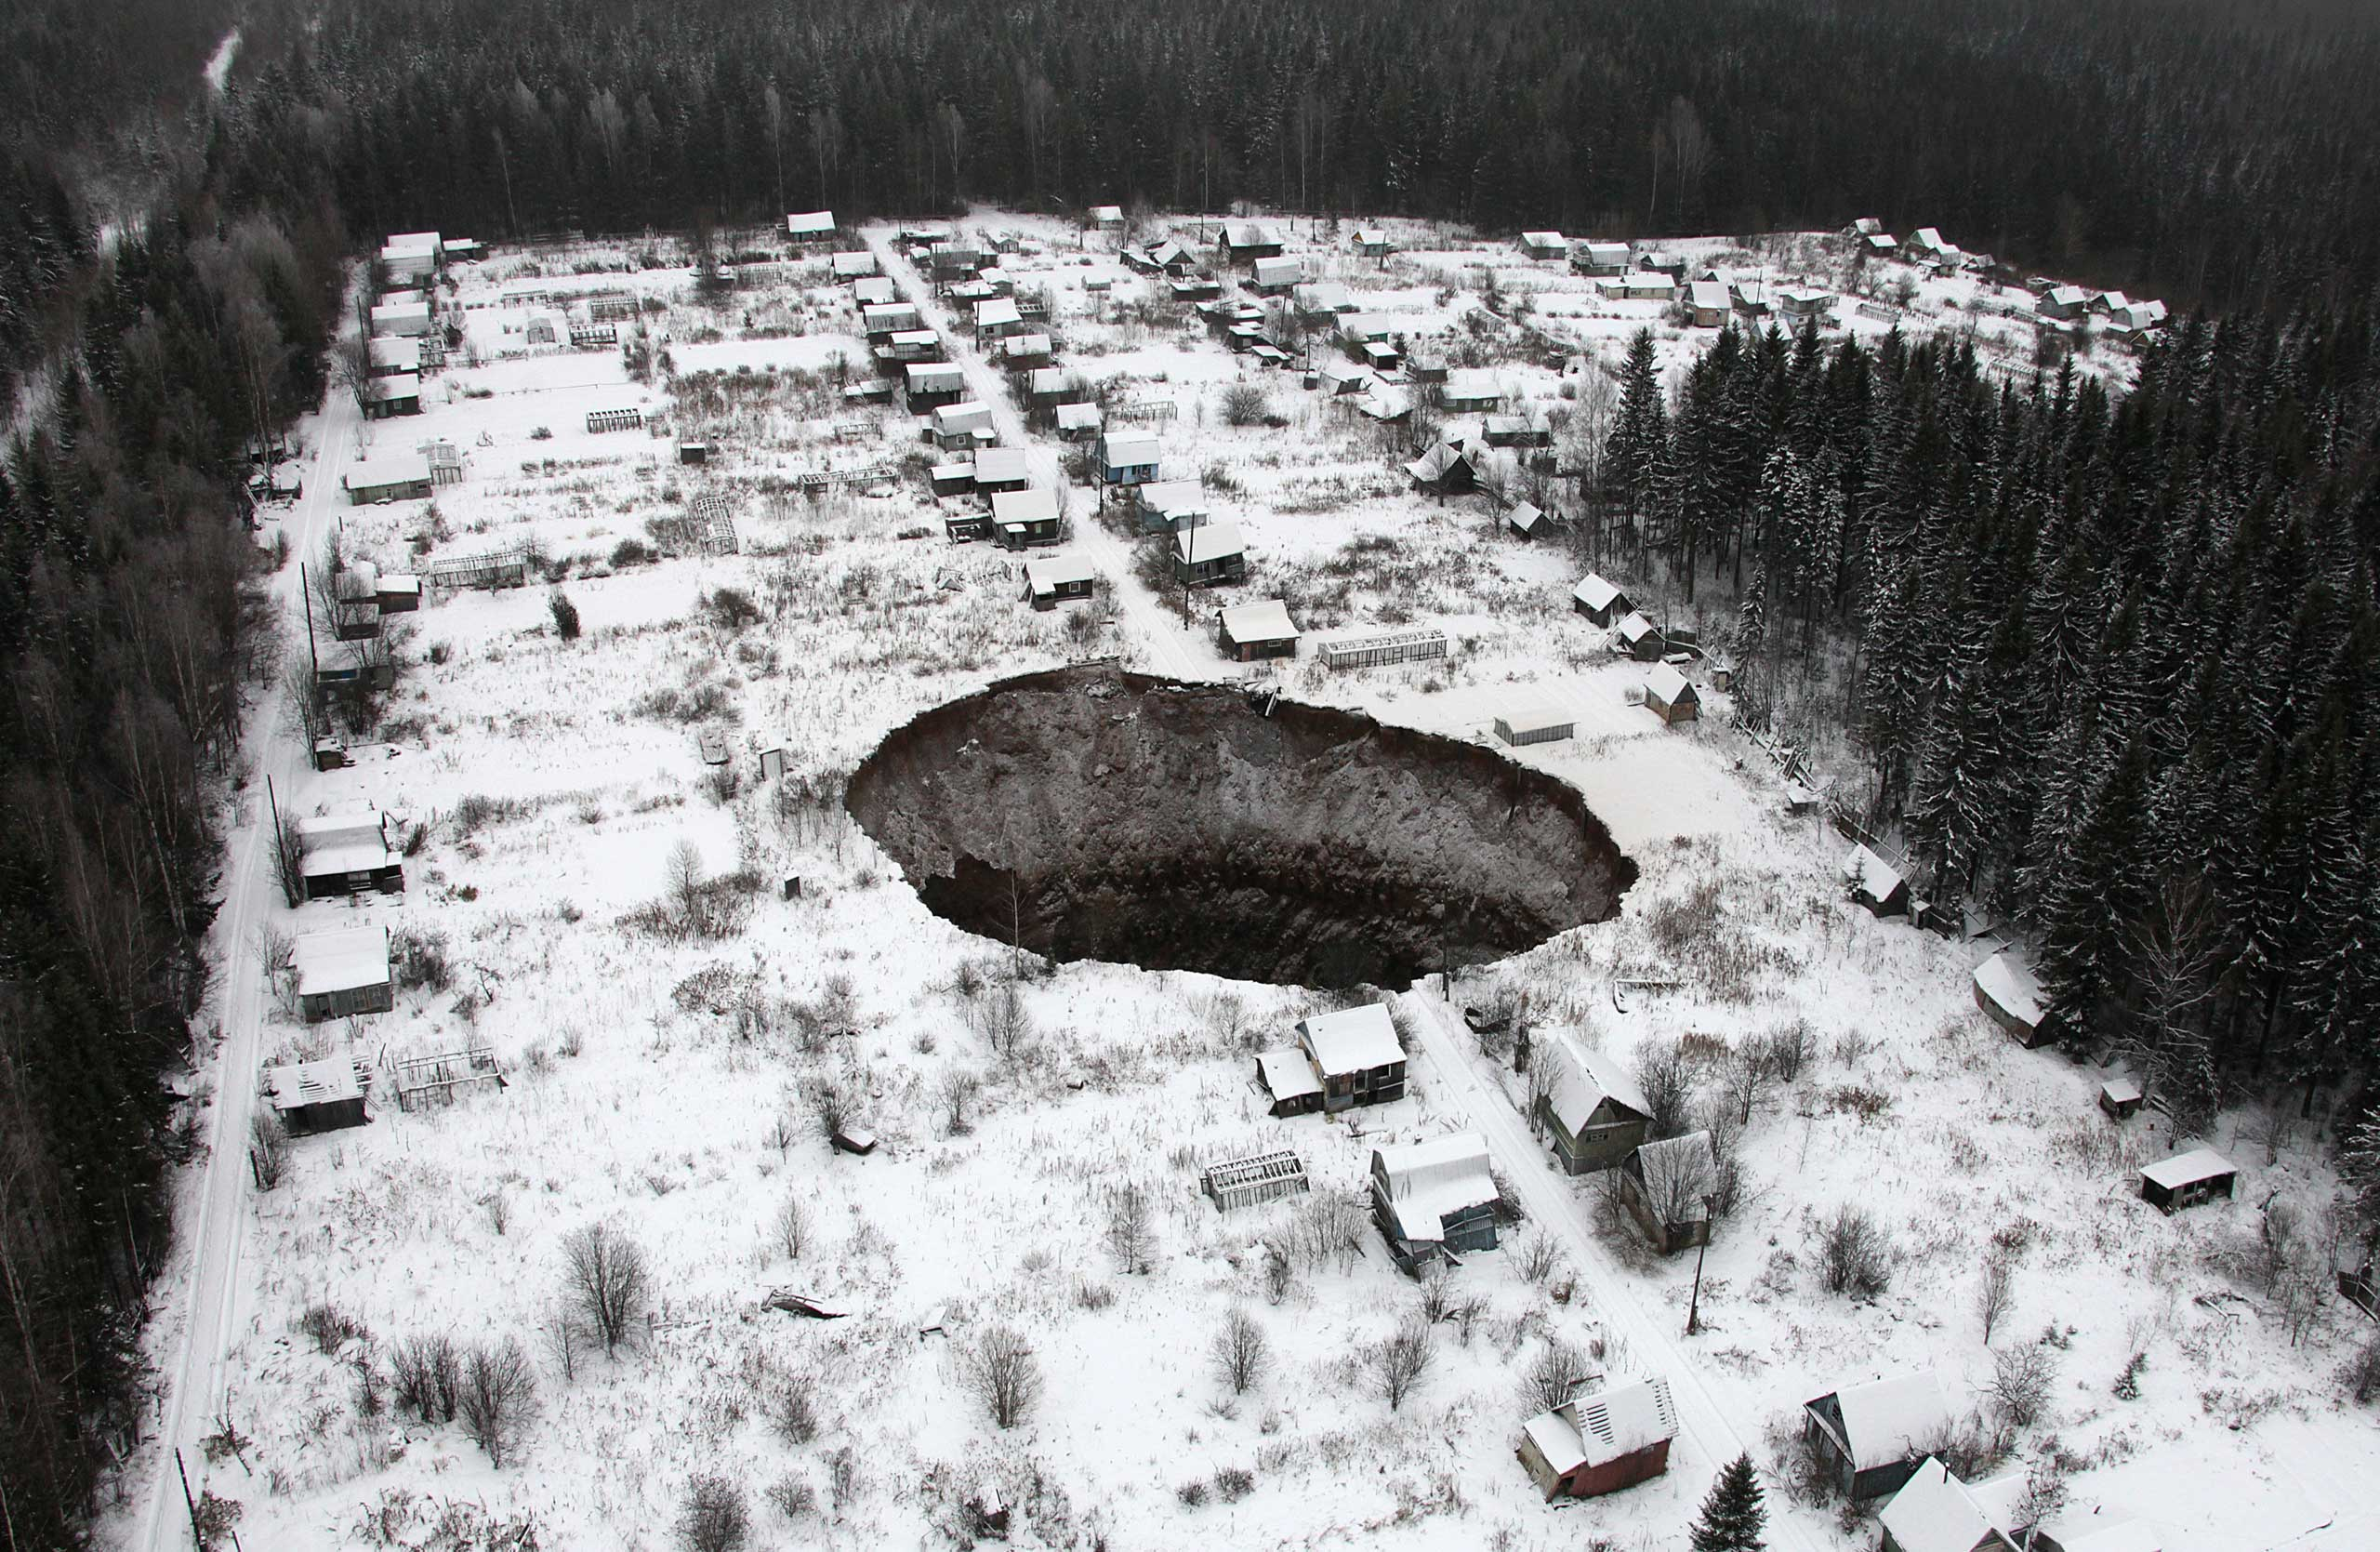 Nov. 20, 2014. A view of a sinkhole stretching 65 by 98 ft. at the Solikamsk-2 mine in the Perm region, Russia.